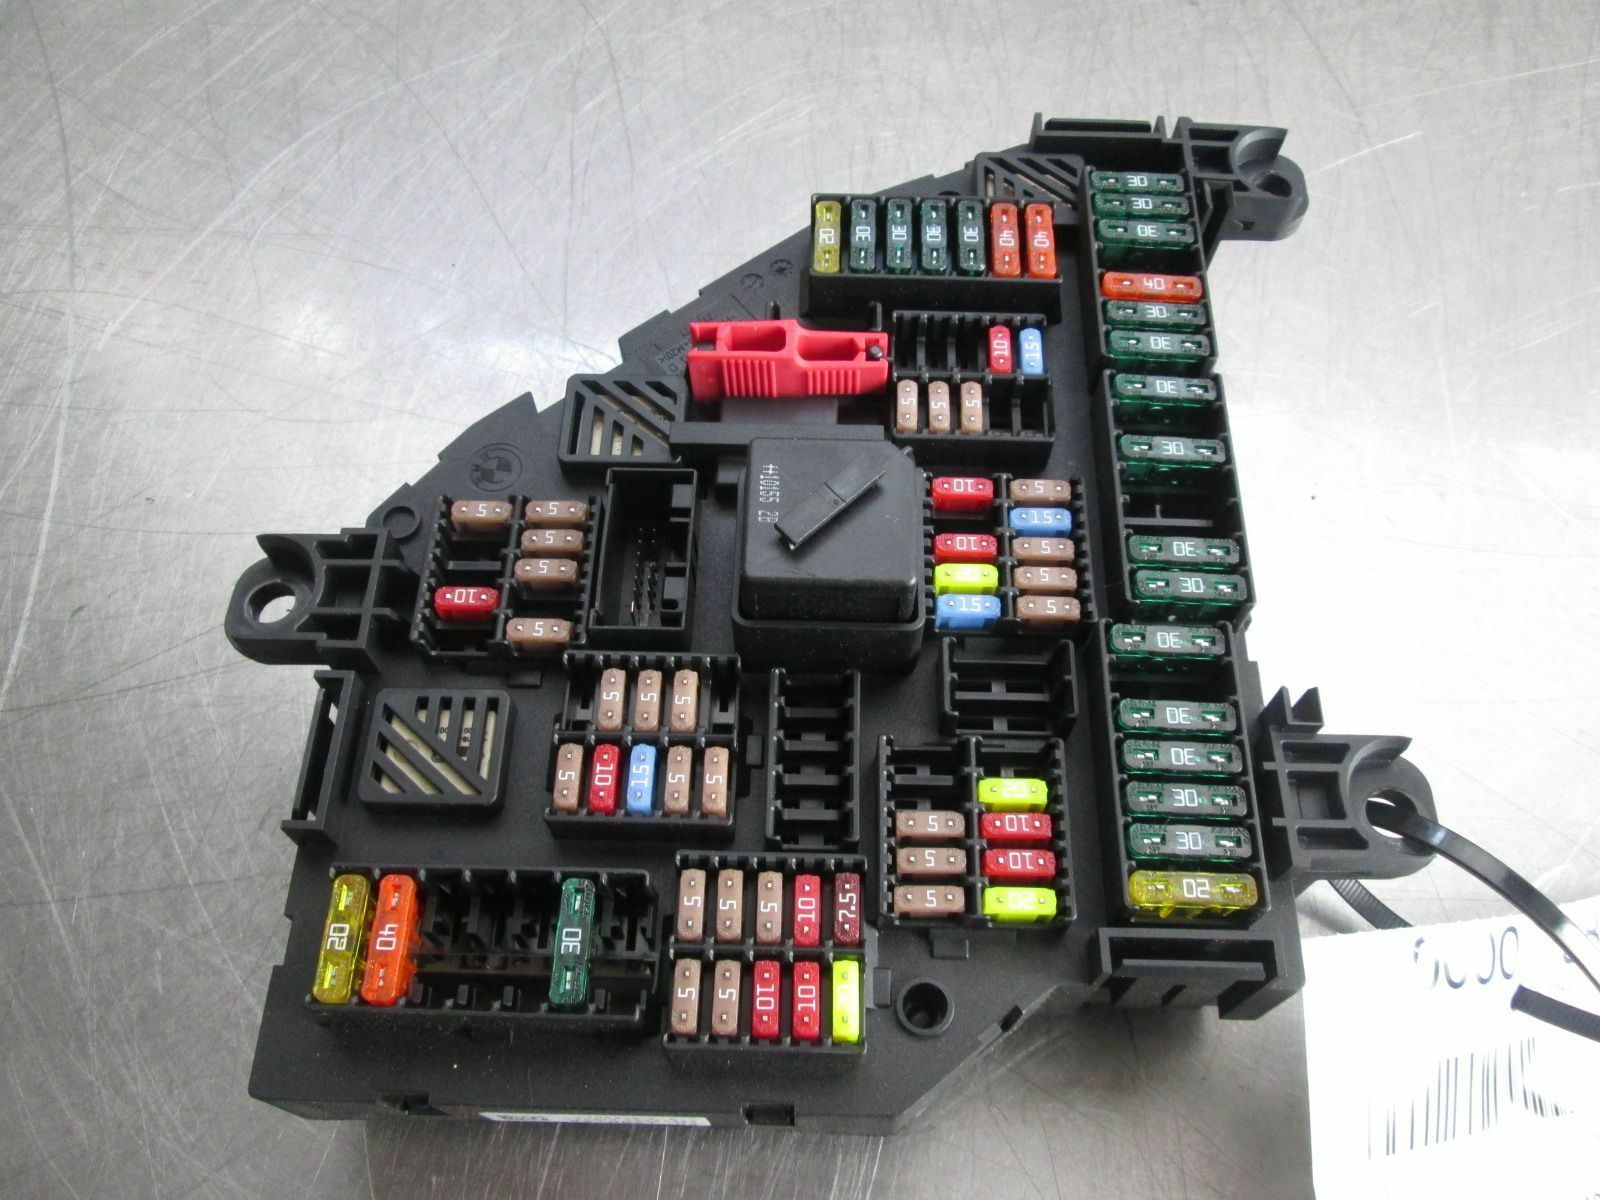 Bmw F10 Rear Fuse Box Electrical Wiring Diagrams 92 318is Diagram Trunk Power Distribution 61149210857 750 F01 F02 1992 325i Panel